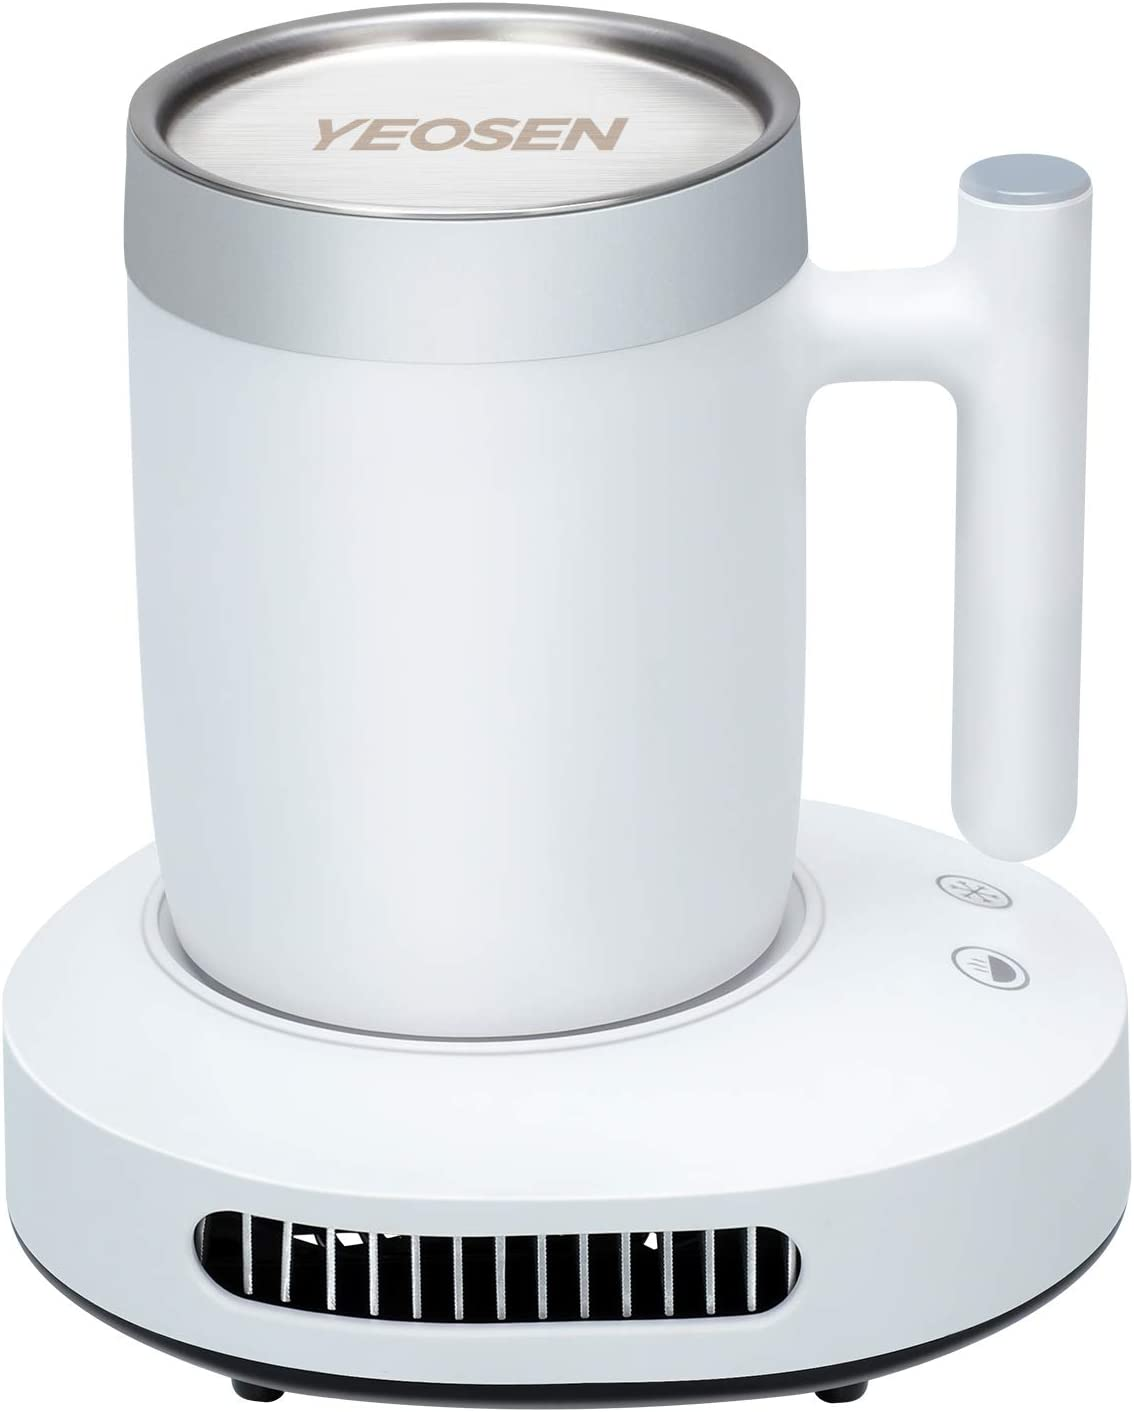 YEOSEN Coffee Mug Warmer and Cooler - 2 IN 1 Beverage Warmer and Drink Cooler with Mug, Auto Shut Off Mug Cooler and Warmer for Office Desk Use (Up to 131F or 46F), White